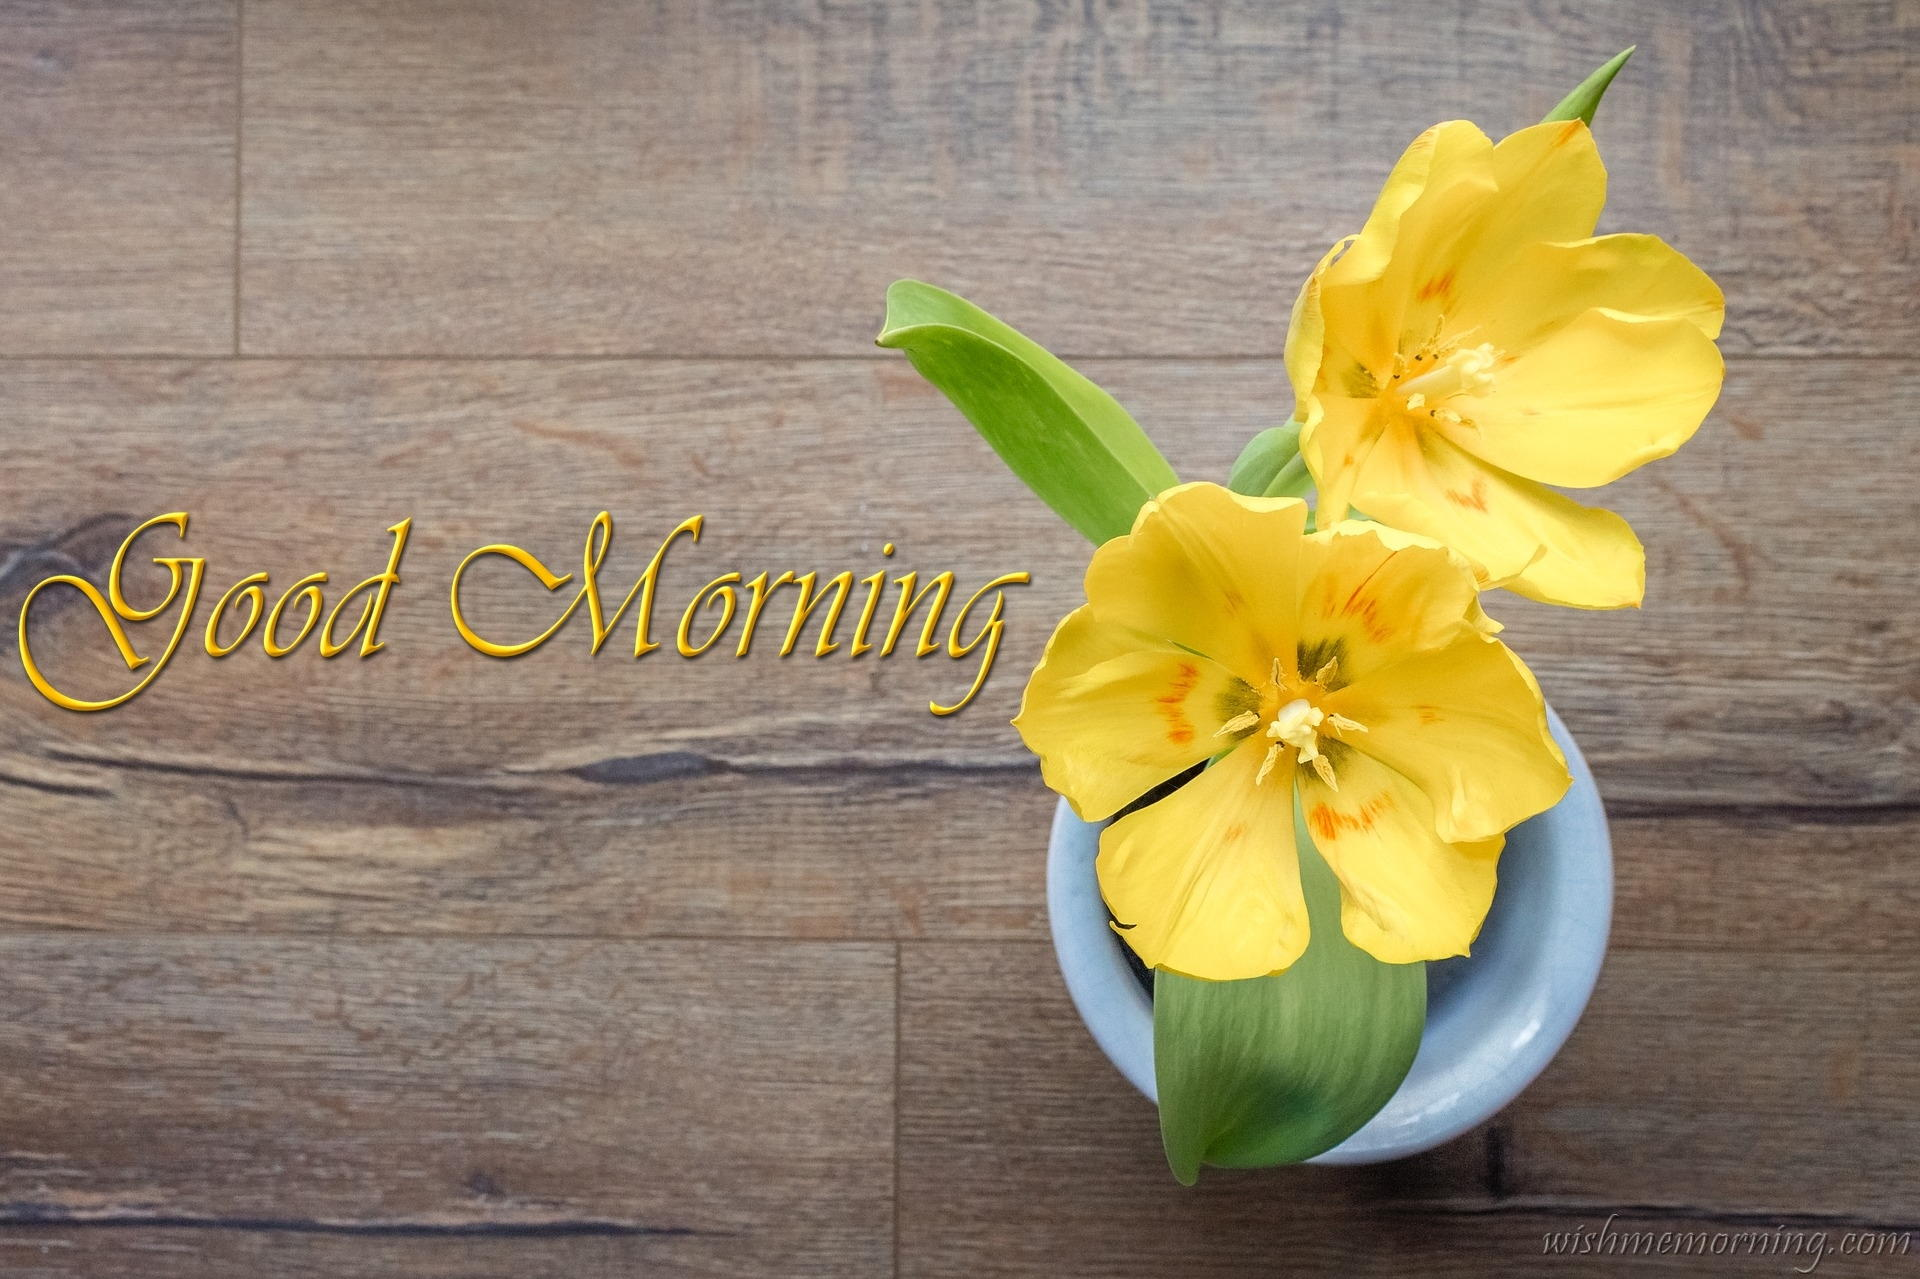 Two Yellow Tulip Flowers in A Cup Good Morning Wish